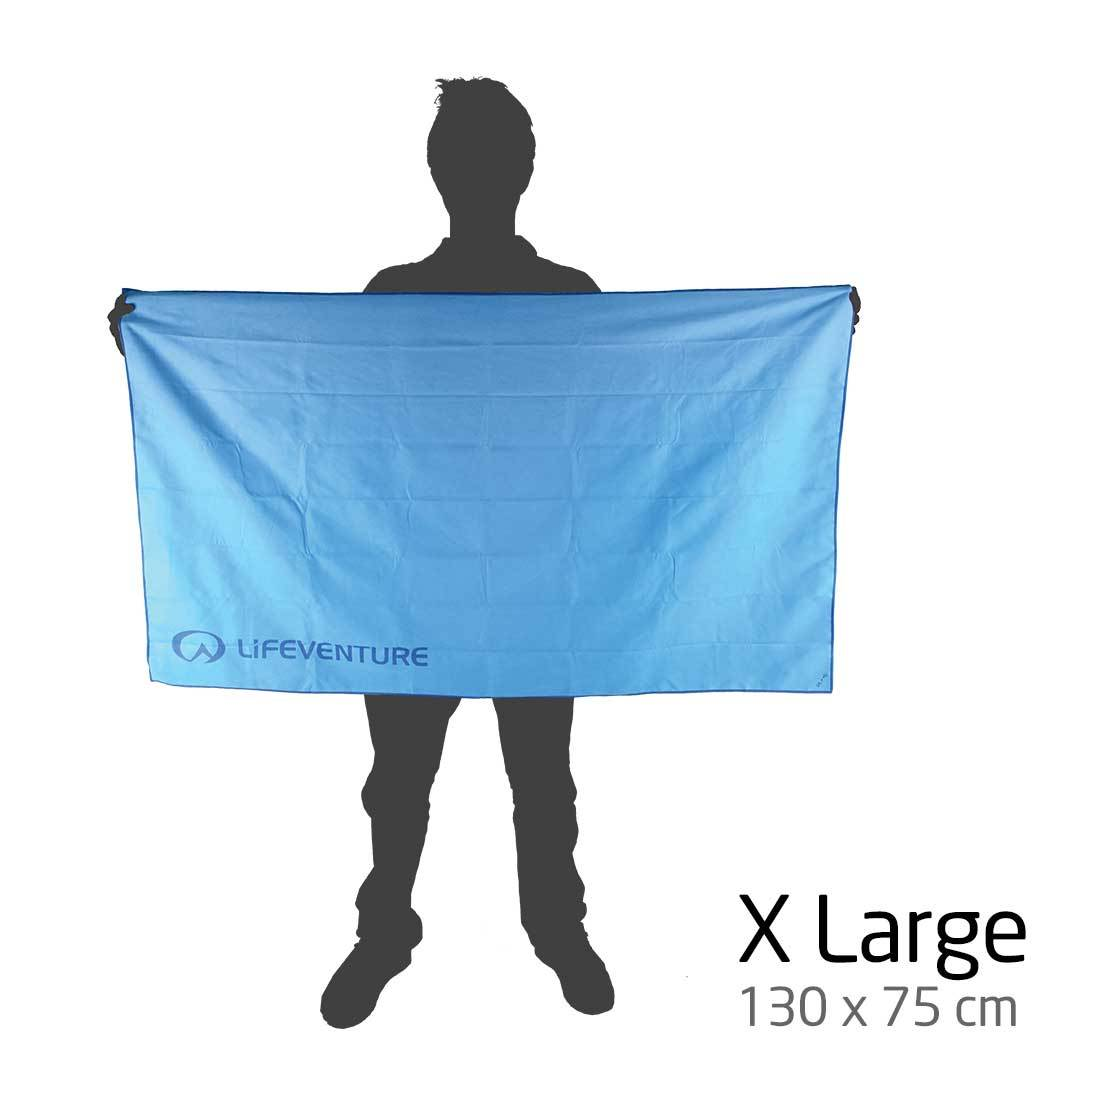 x-large-travel-towel.jpg